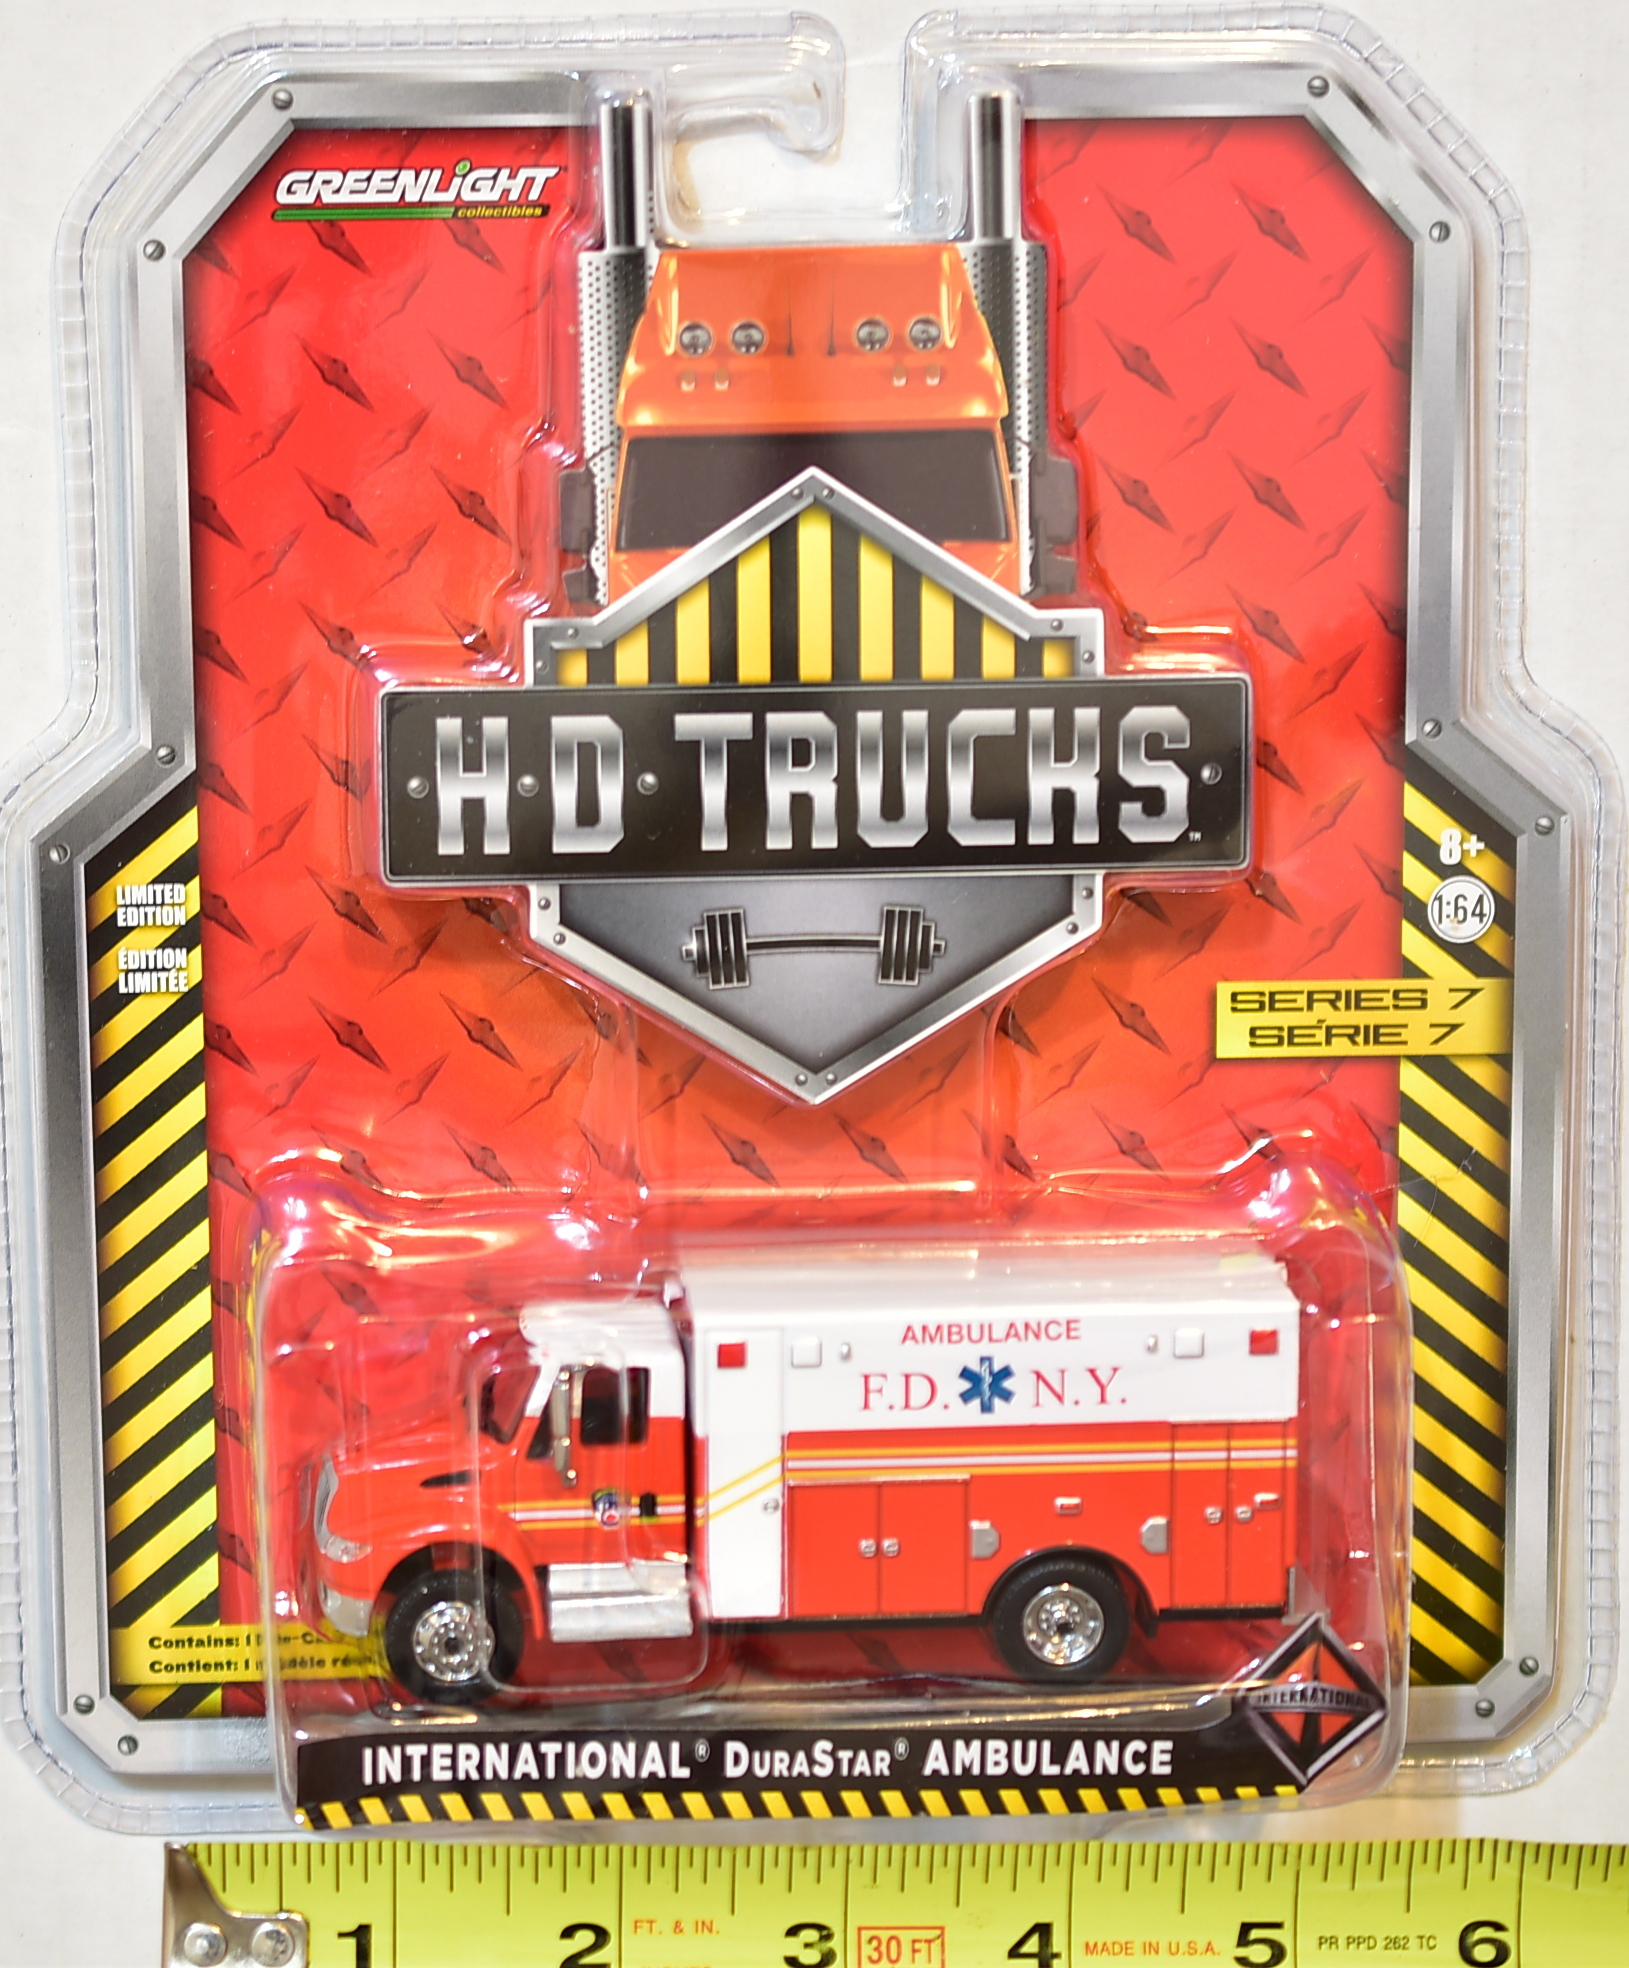 GREENLIGHT .H.D.TRUCKS INTERNATIONAL DURASTAR AMBULANCE SERIES 7 1:64